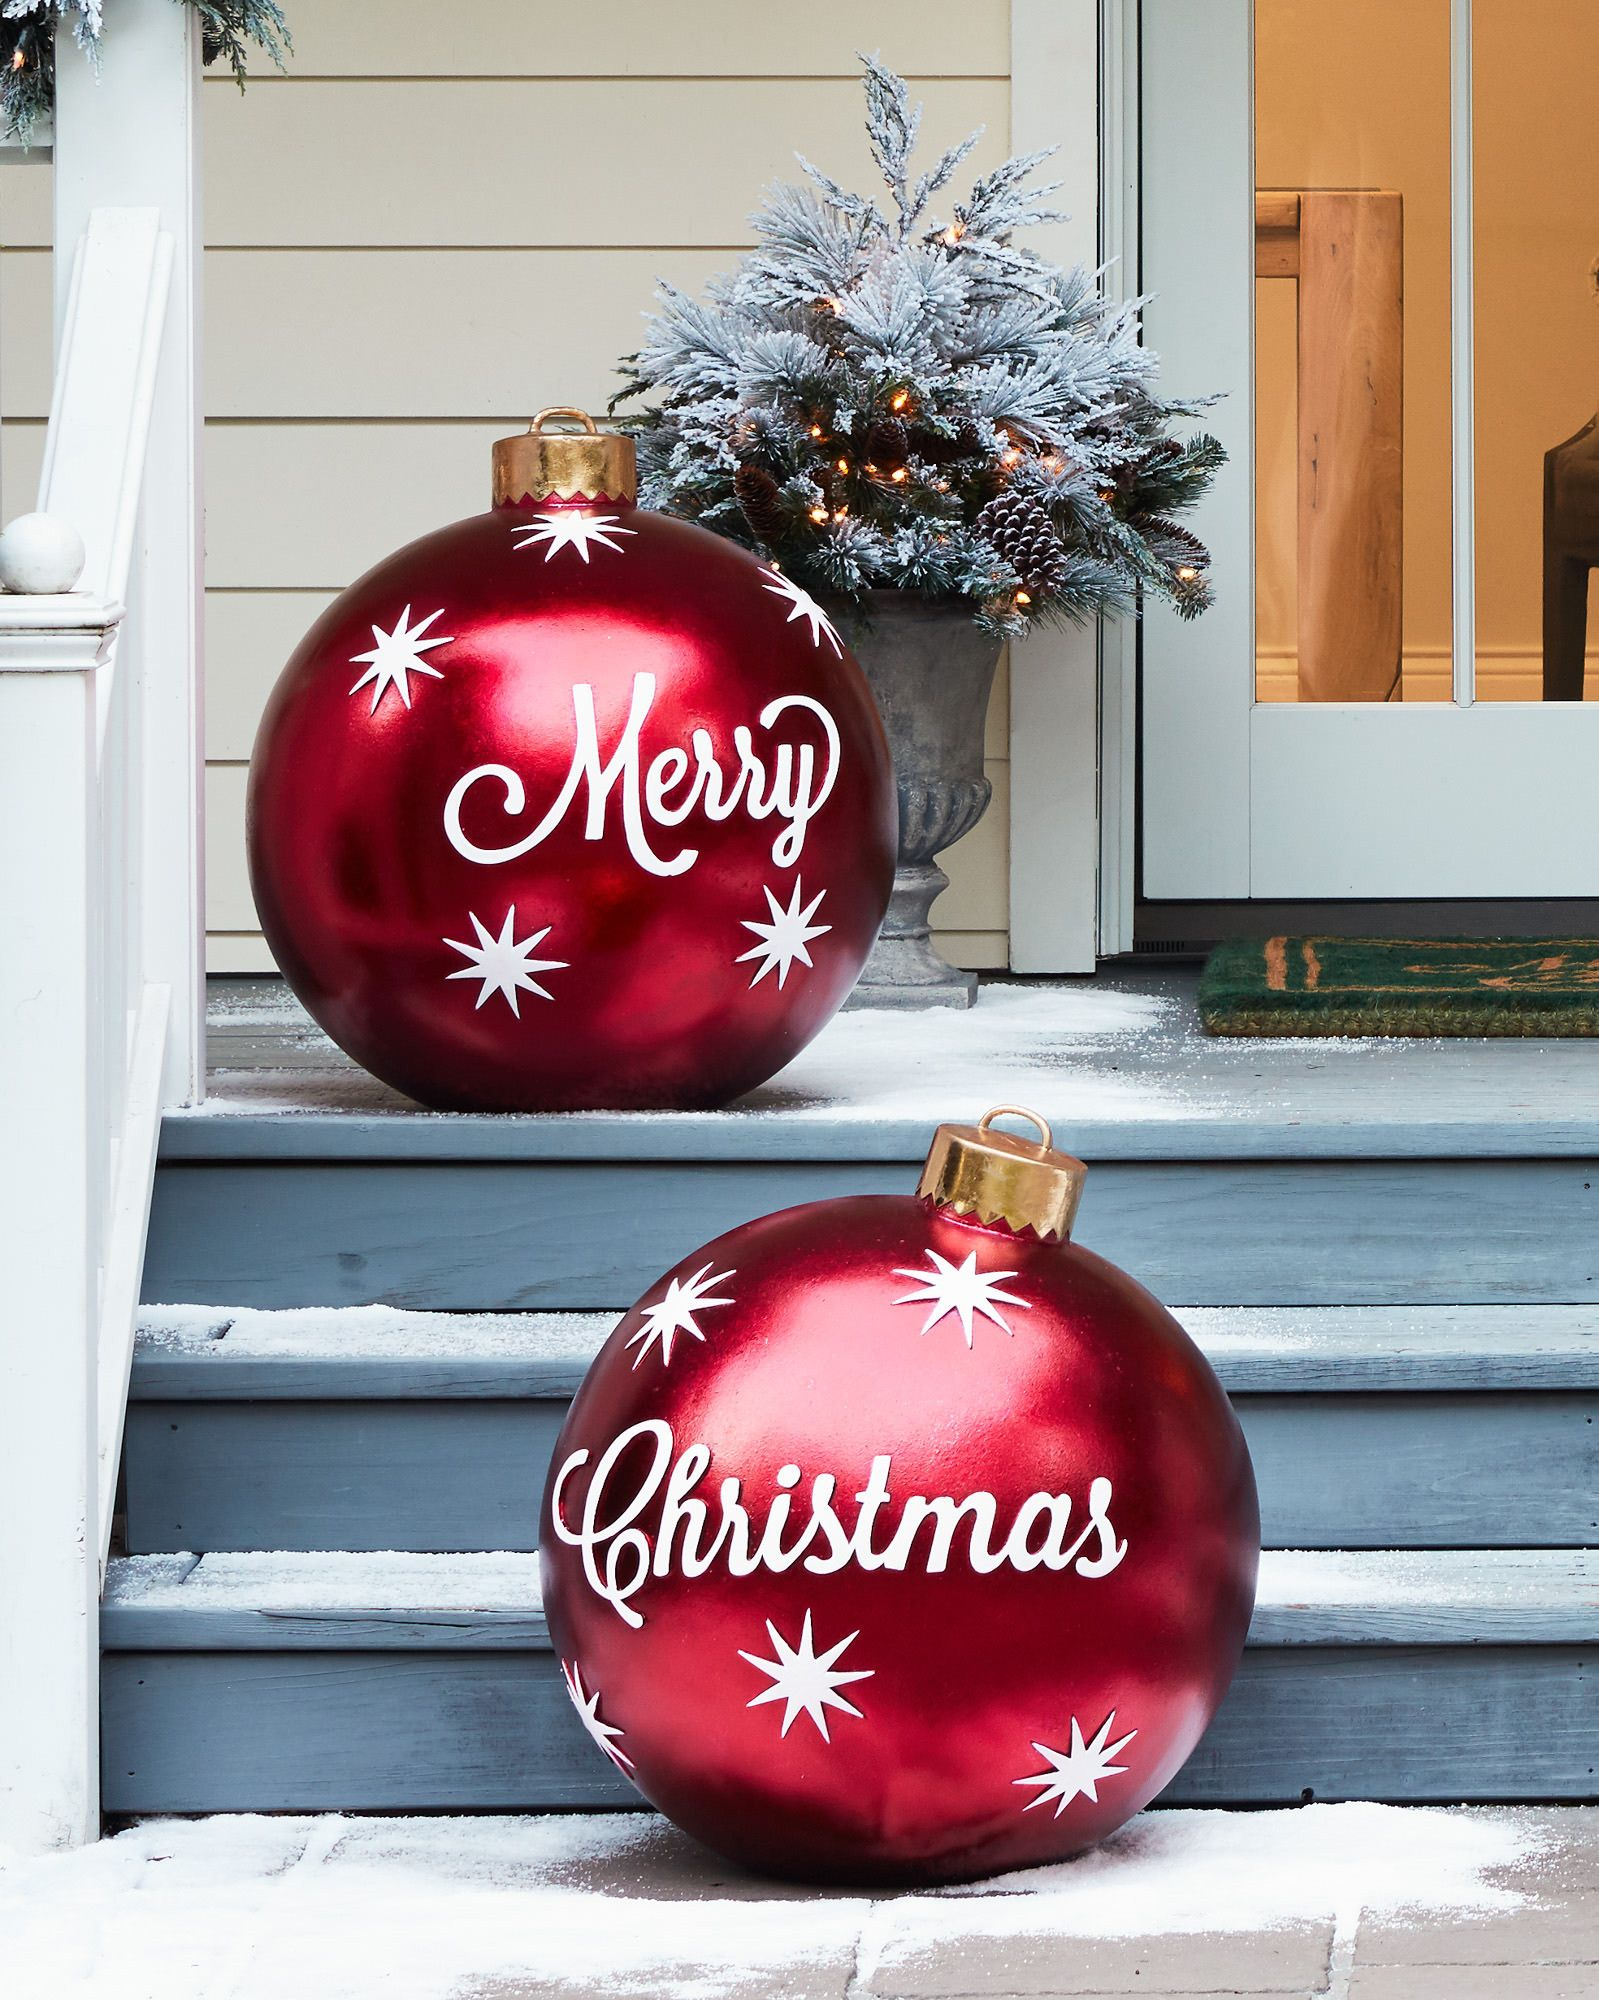 Superb Christmas Ornaments Outdoor Part  7: Outdoor Merry Christmas  Ornaments, Set Of 2